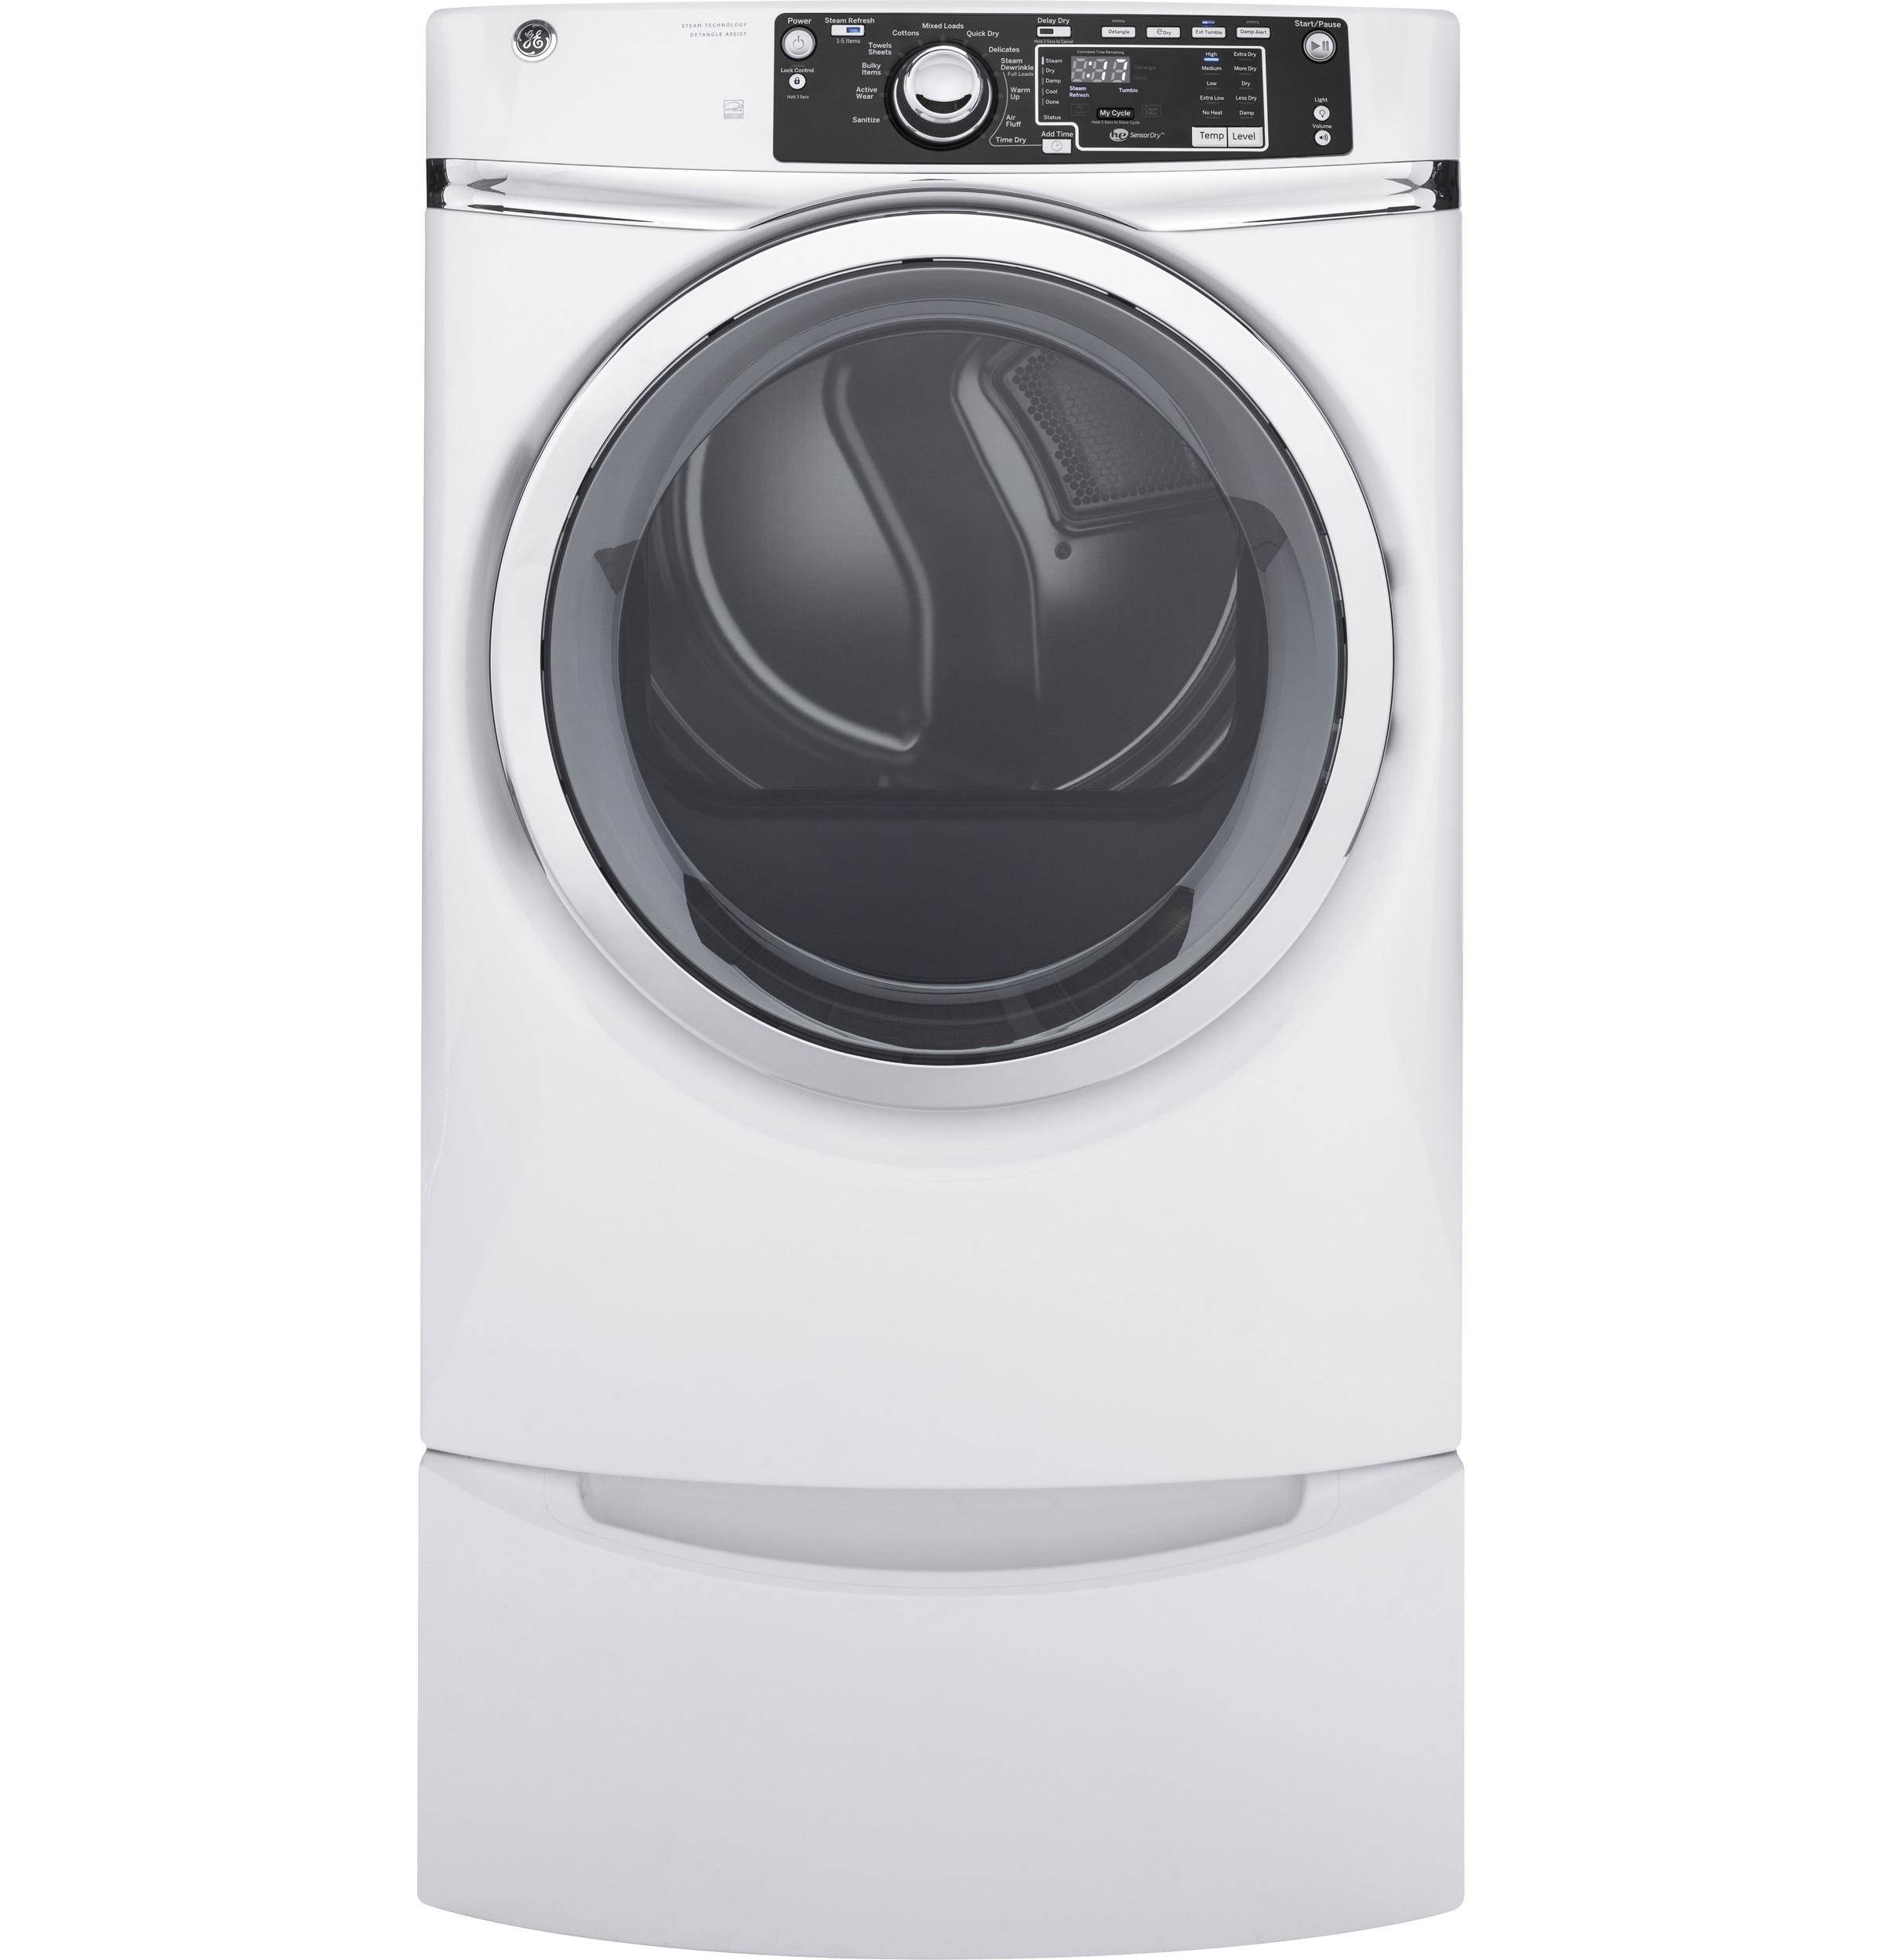 GE(R) 8.3 cu. ft. capacity Front Load gas ENERGY STAR(R) dryer with steam